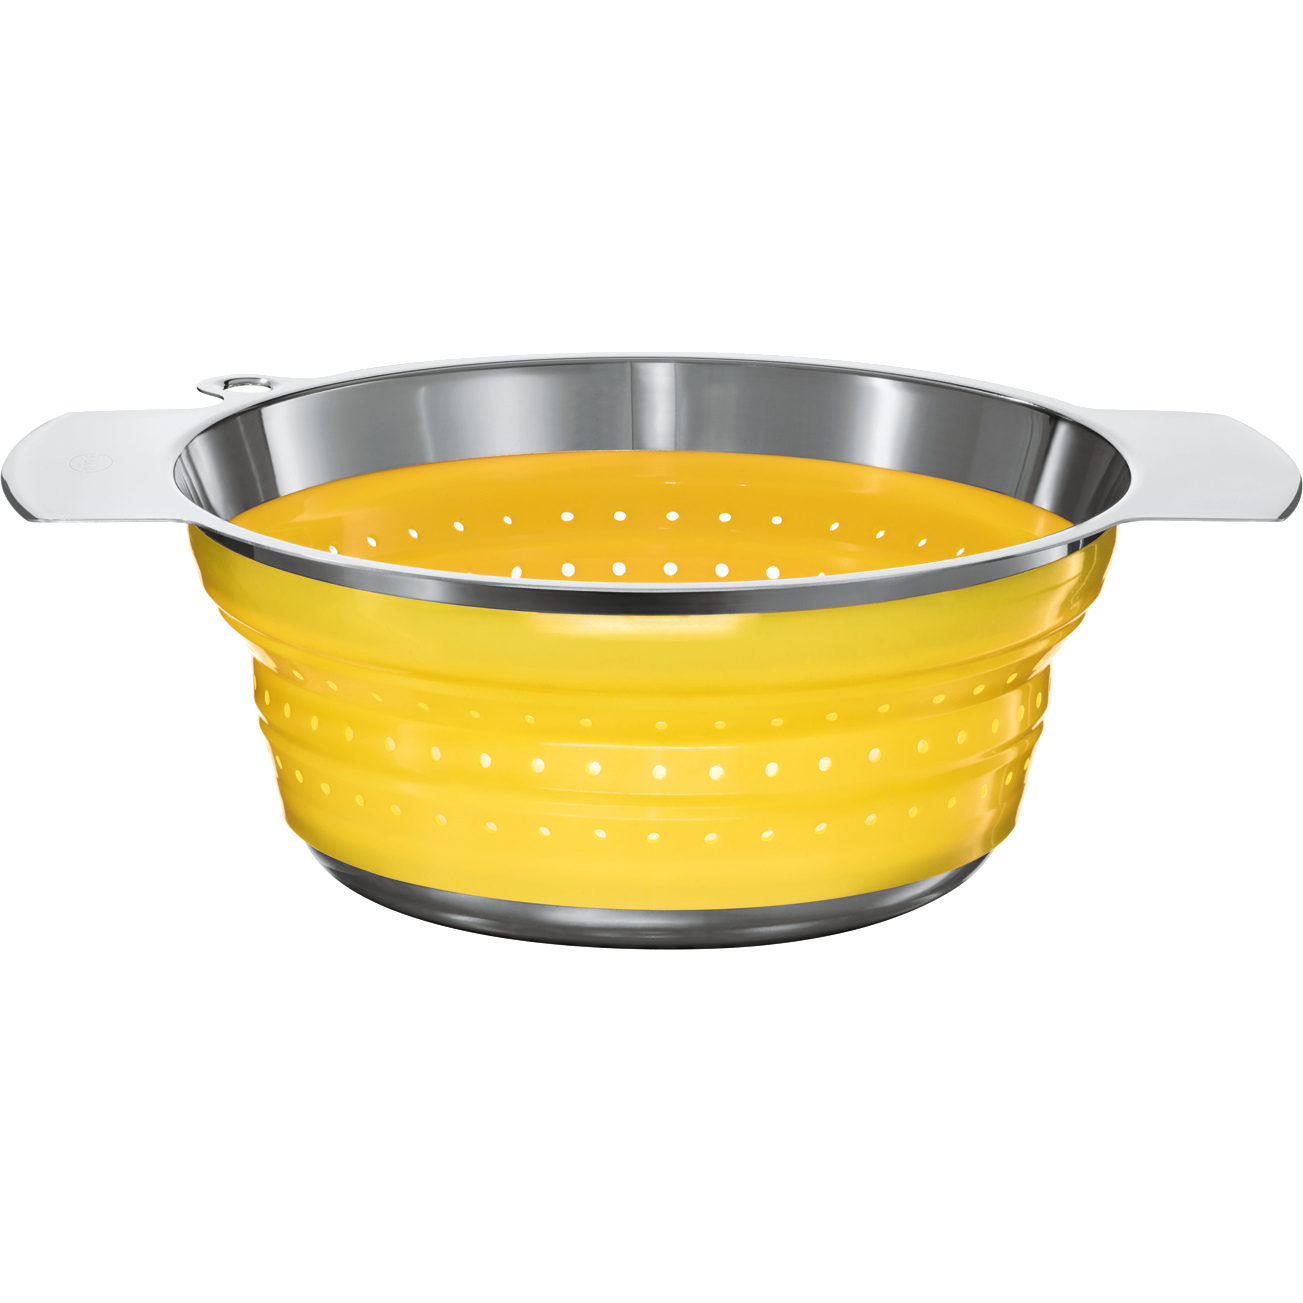 Rosle Yellow Silicone Collapsible Colander, 9.4 Inch